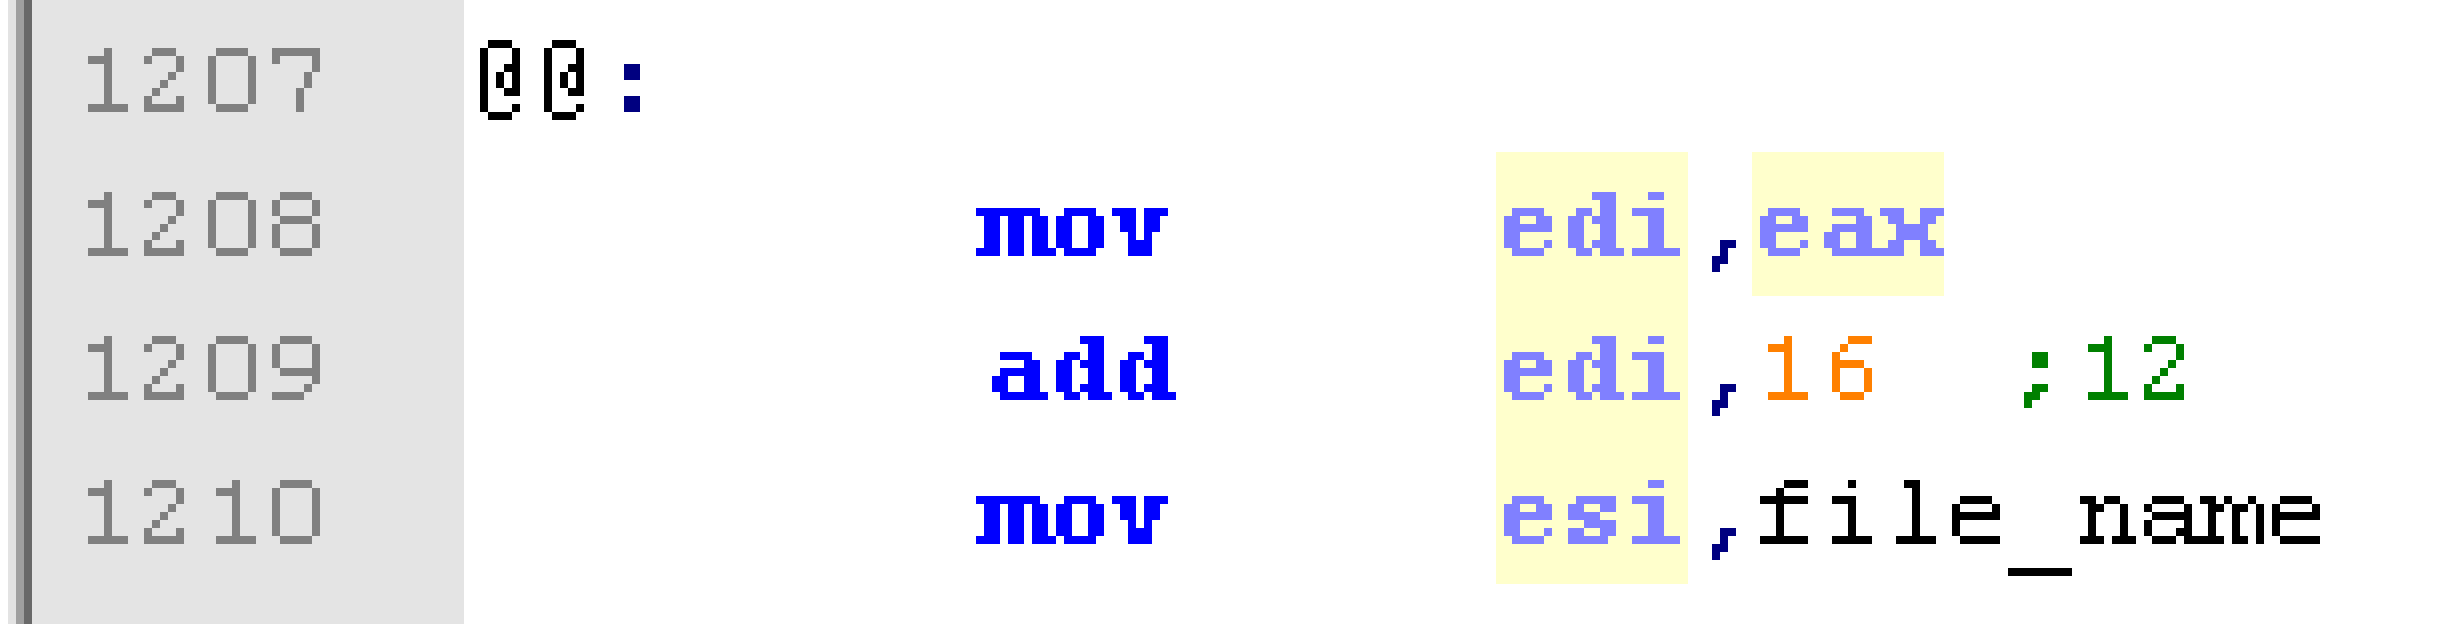 w7_font_nonsmooth.png